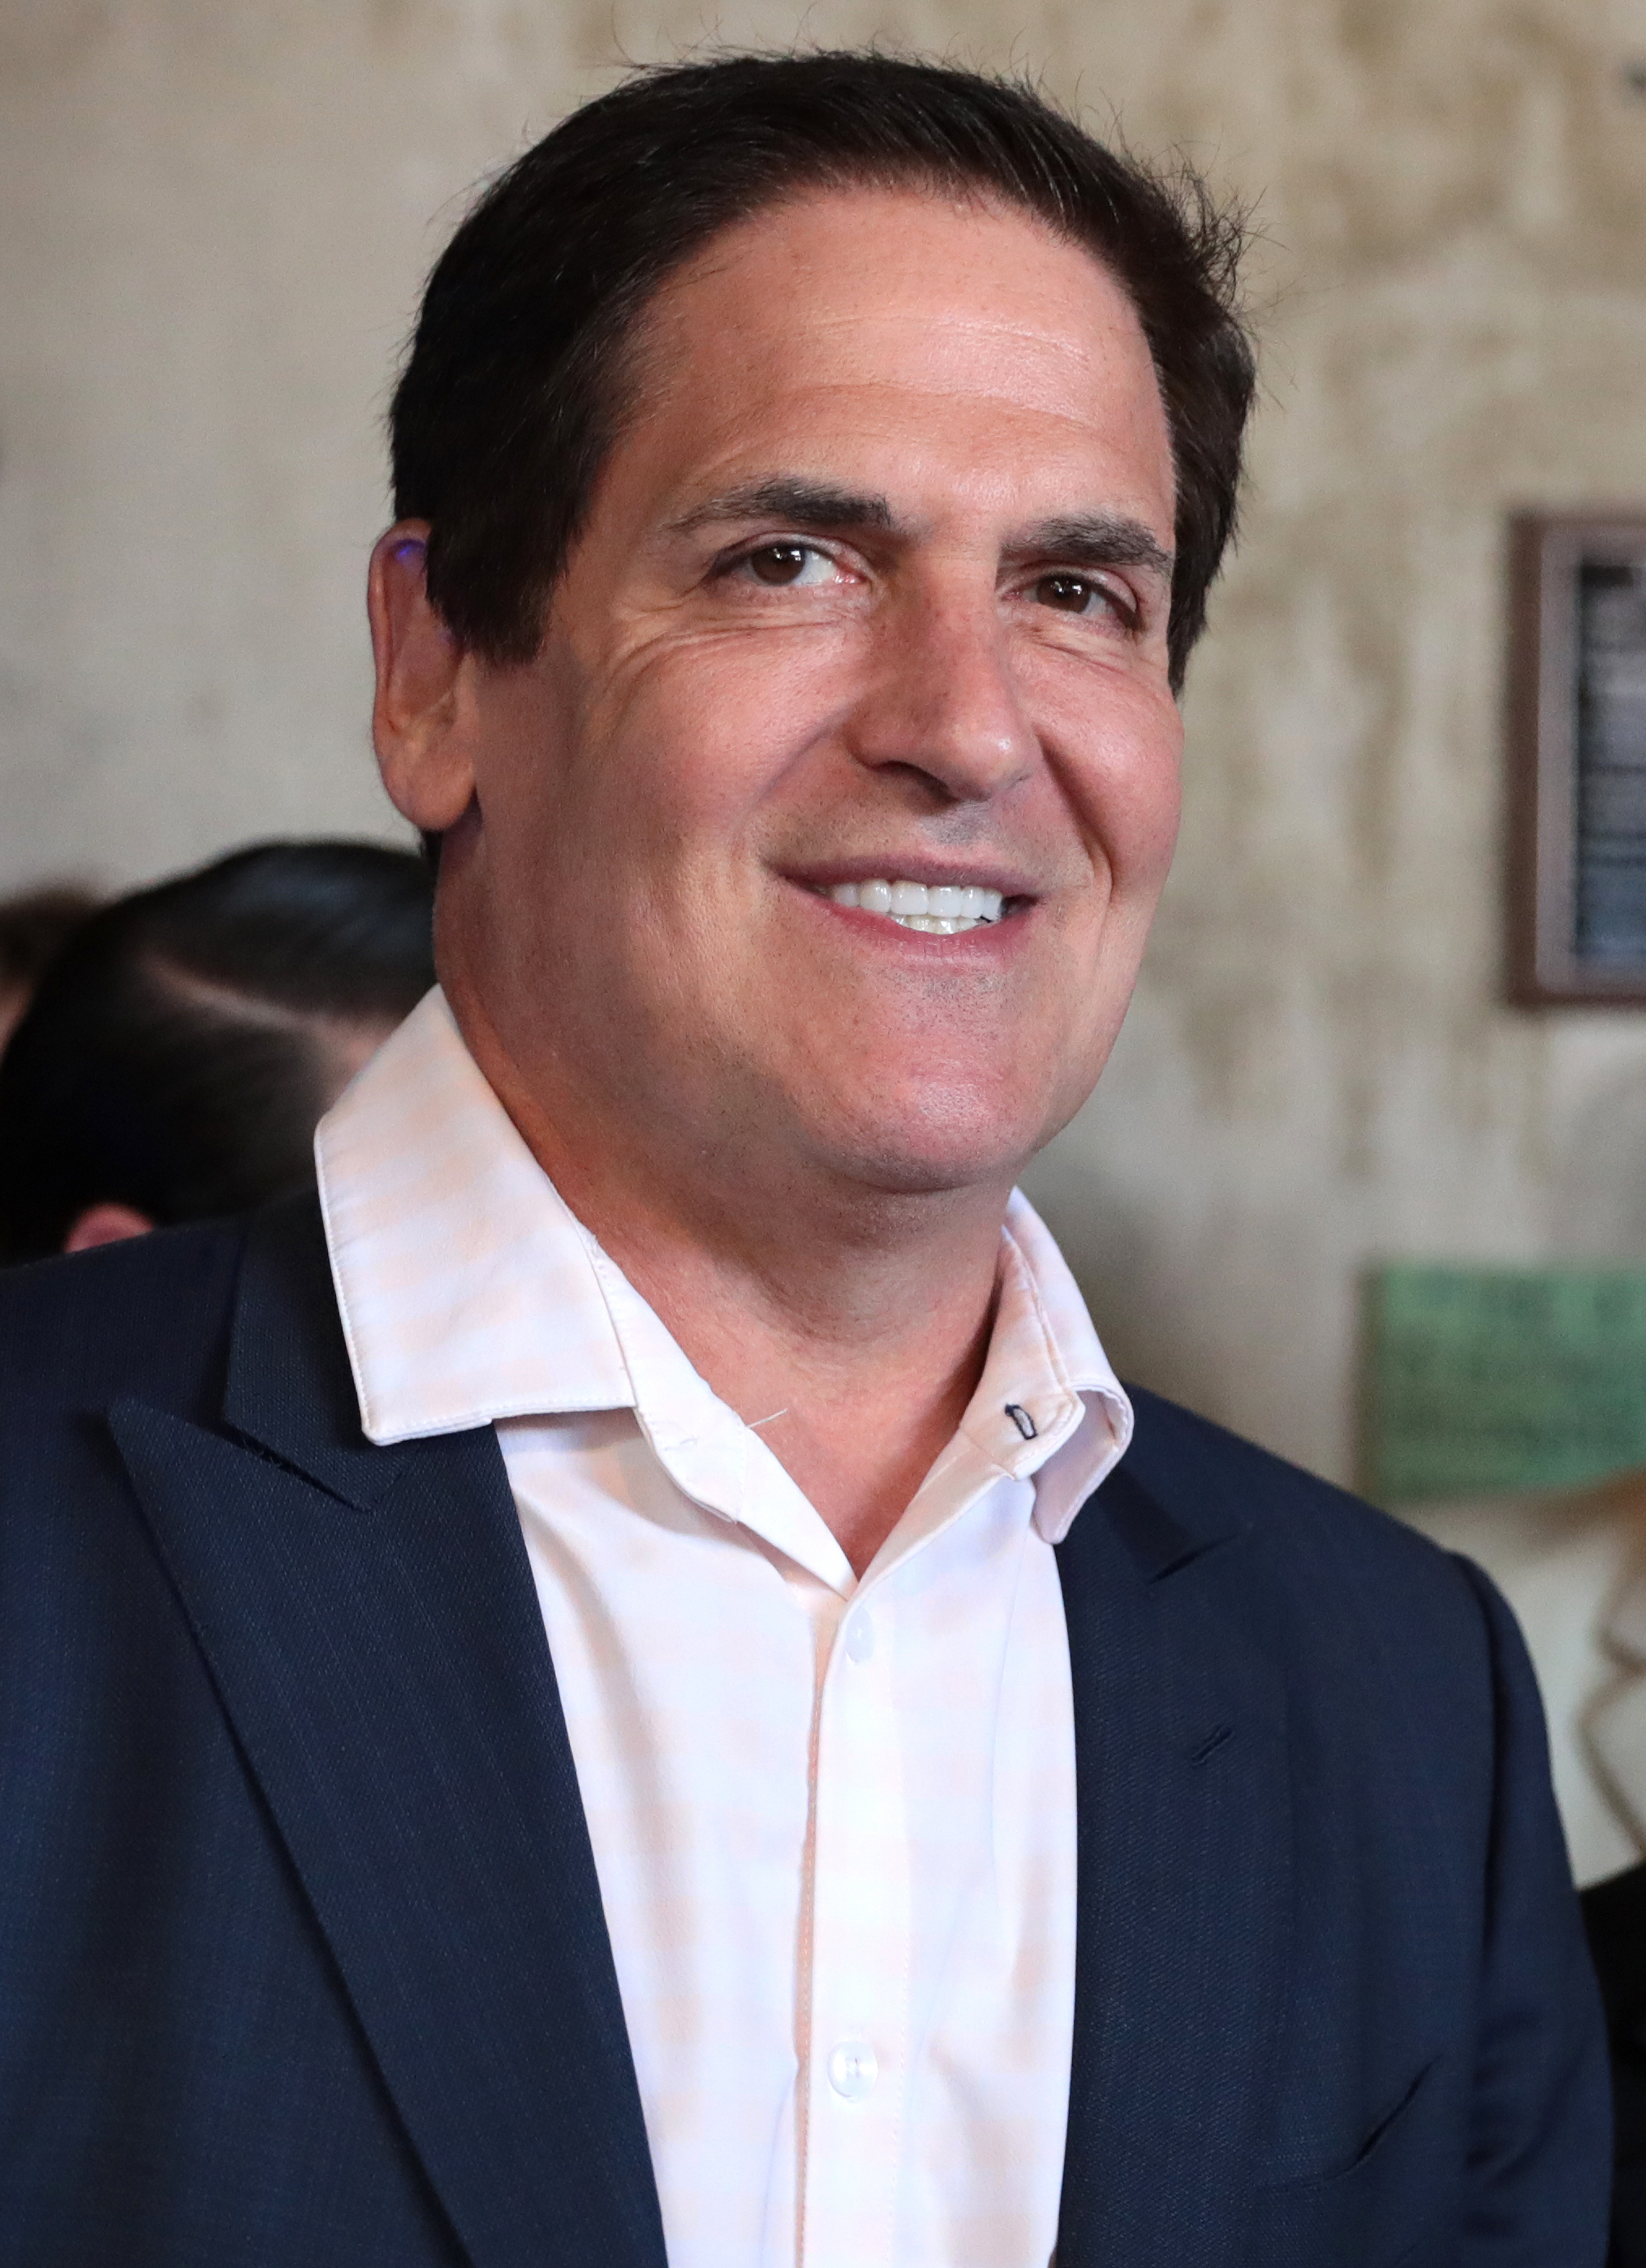 The 63-year old son of father Norton Cuban and mother Shirley Cuban Mark Cuban in 2021 photo. Mark Cuban earned a  million dollar salary - leaving the net worth at 2700 million in 2021